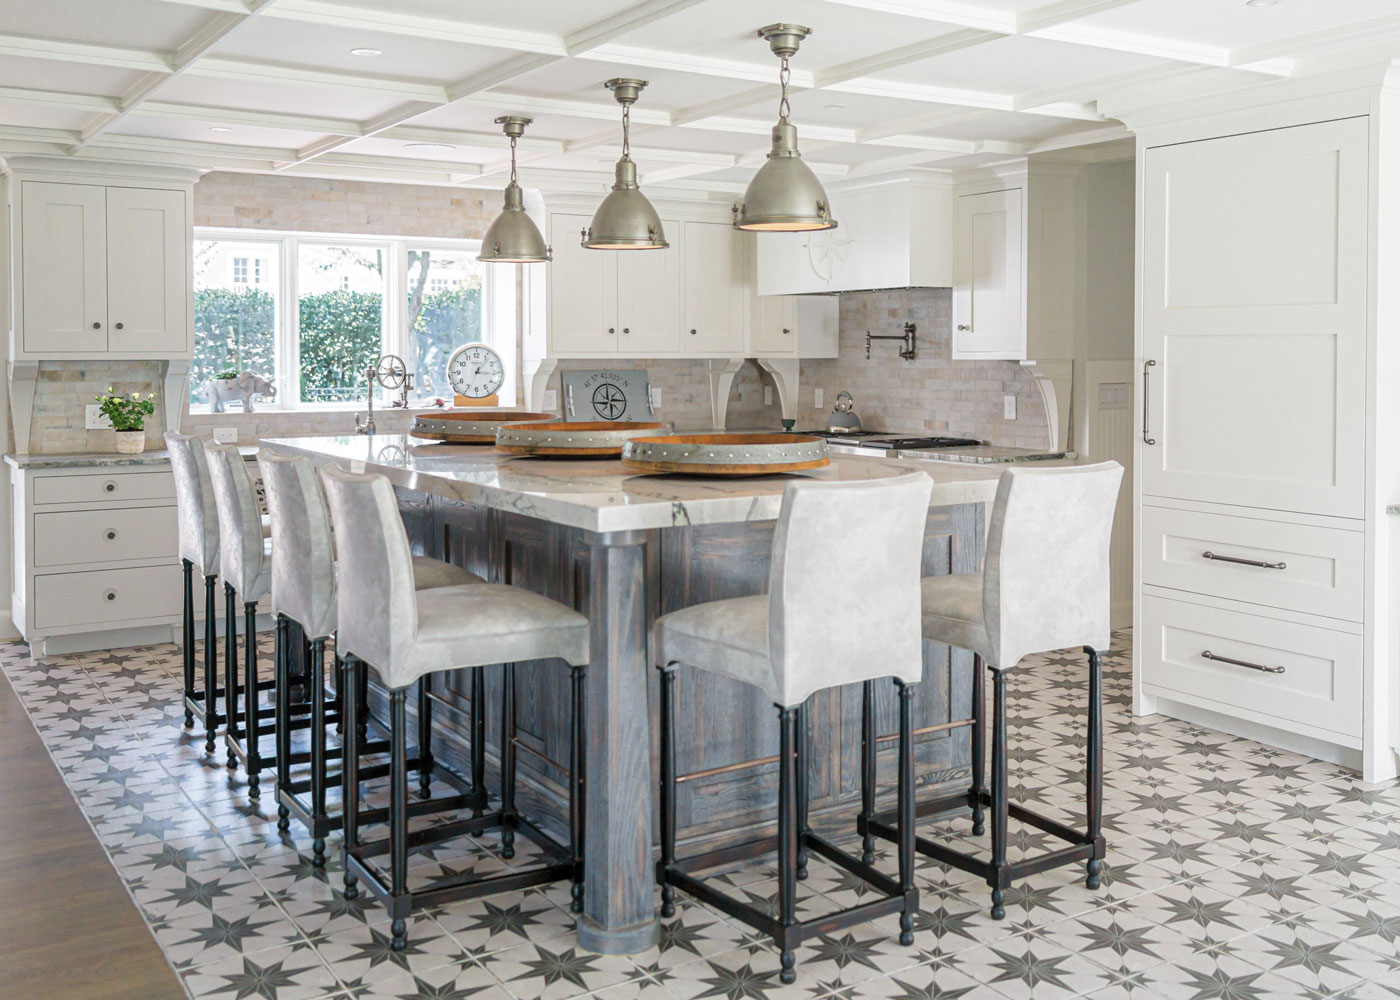 modern kitchen with white cabinets and an oversized island surrounded by stools